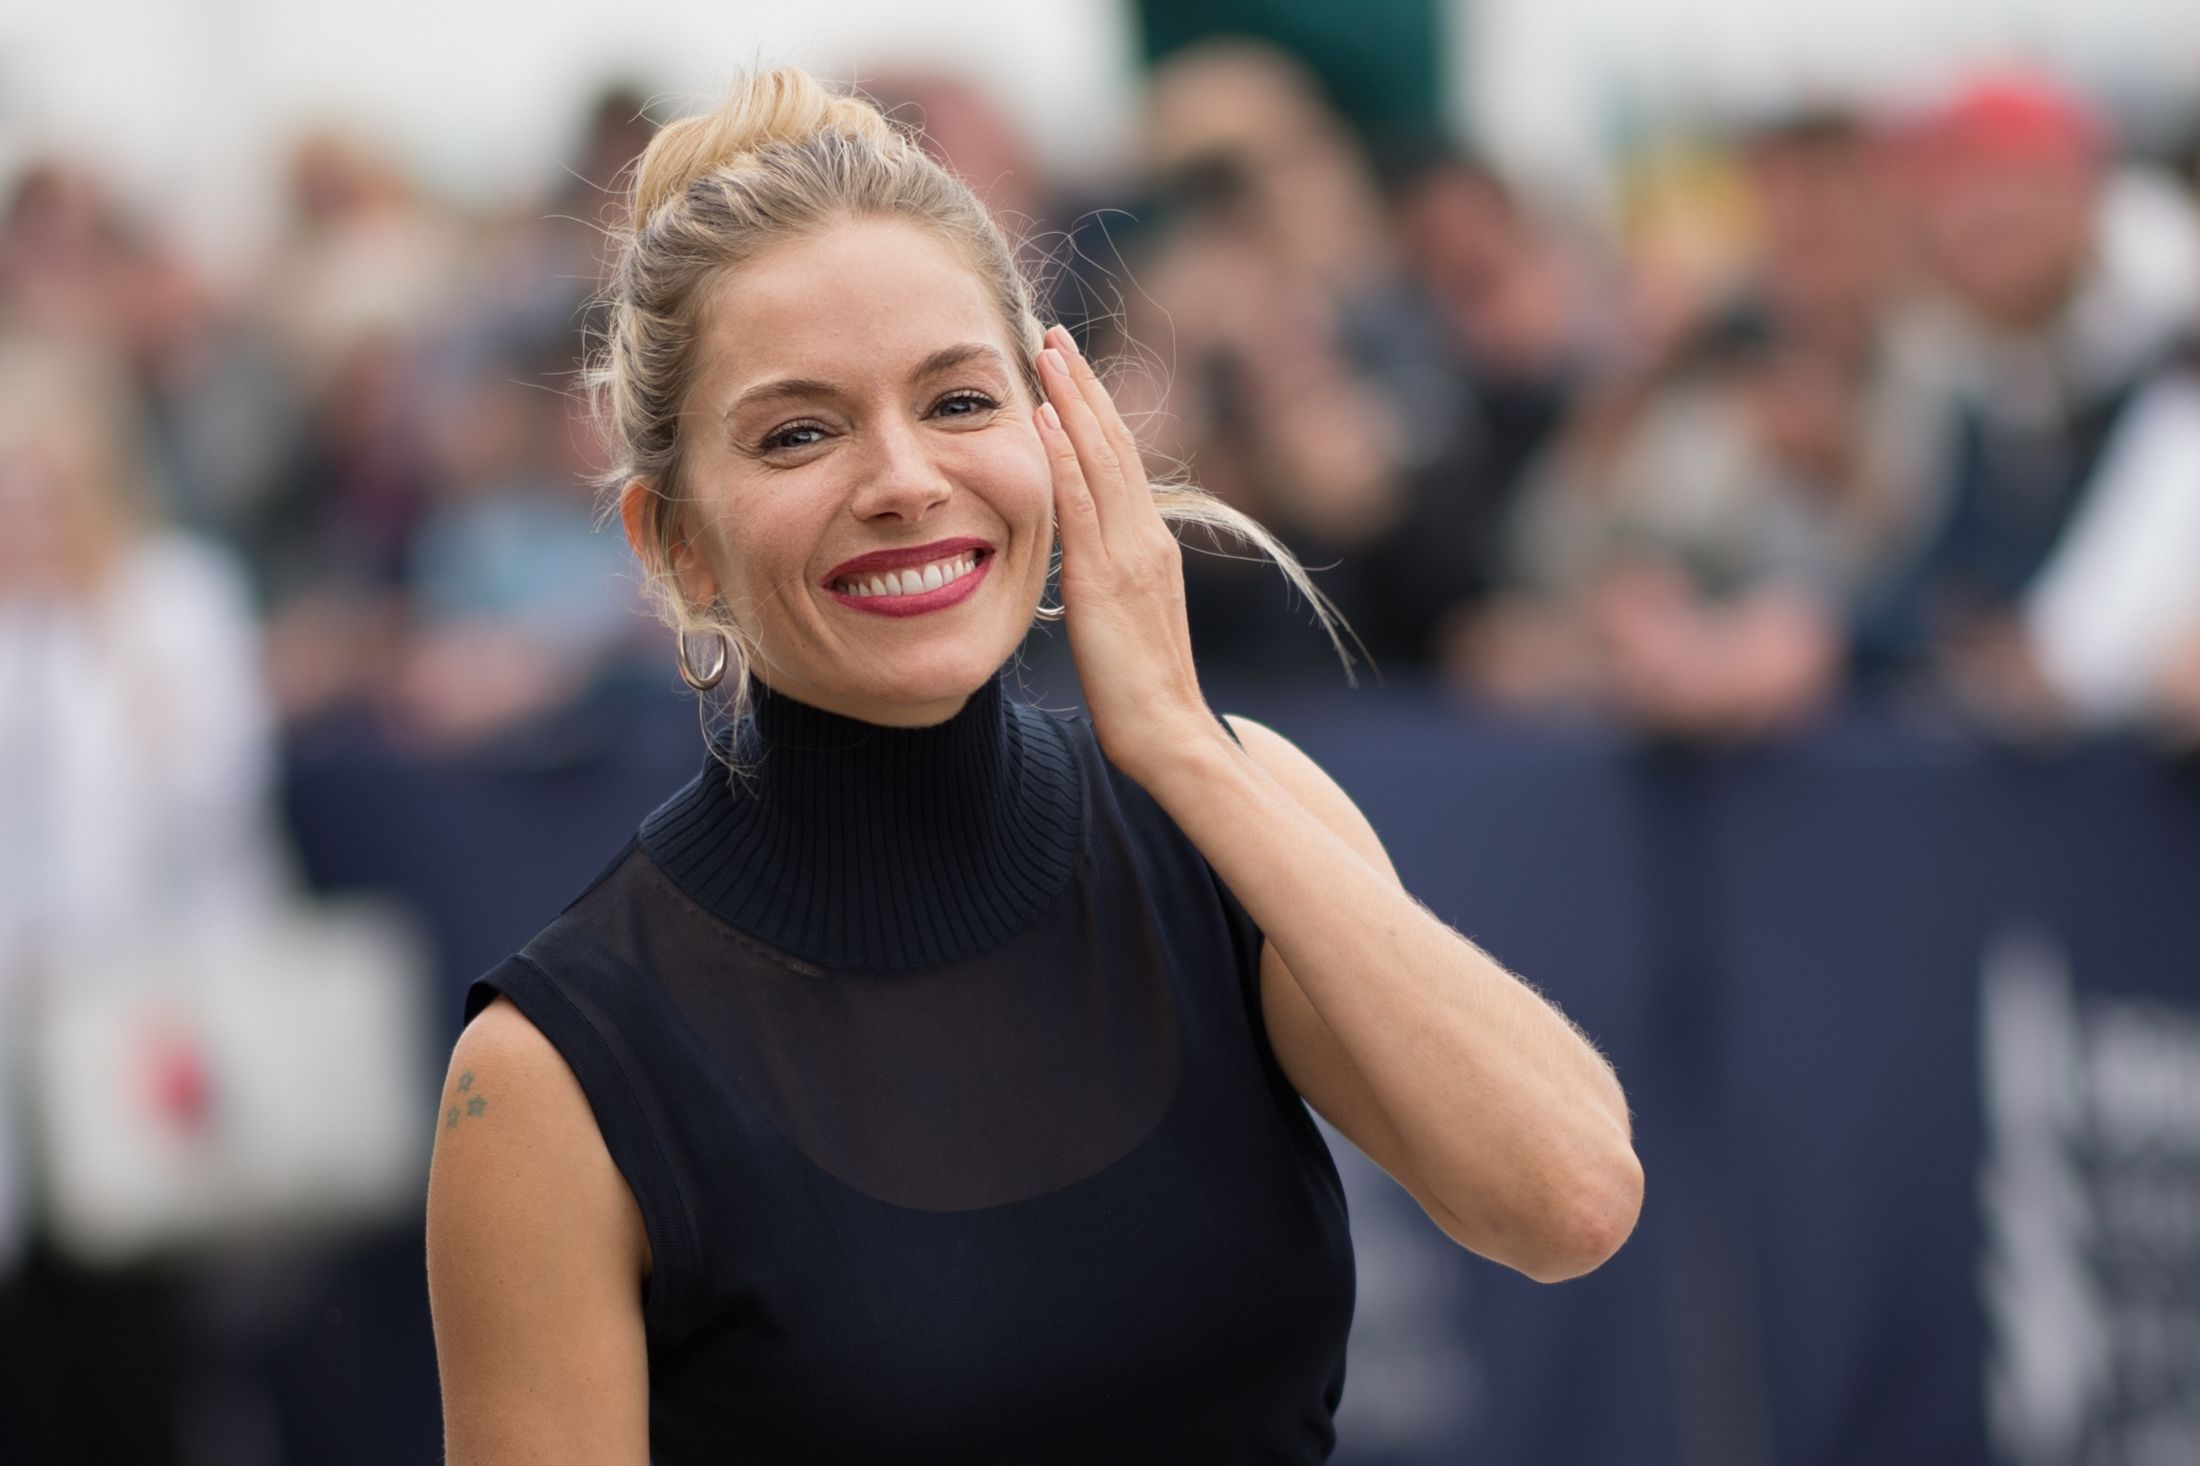 Sienna Miller is here to convince you to wear platforms again